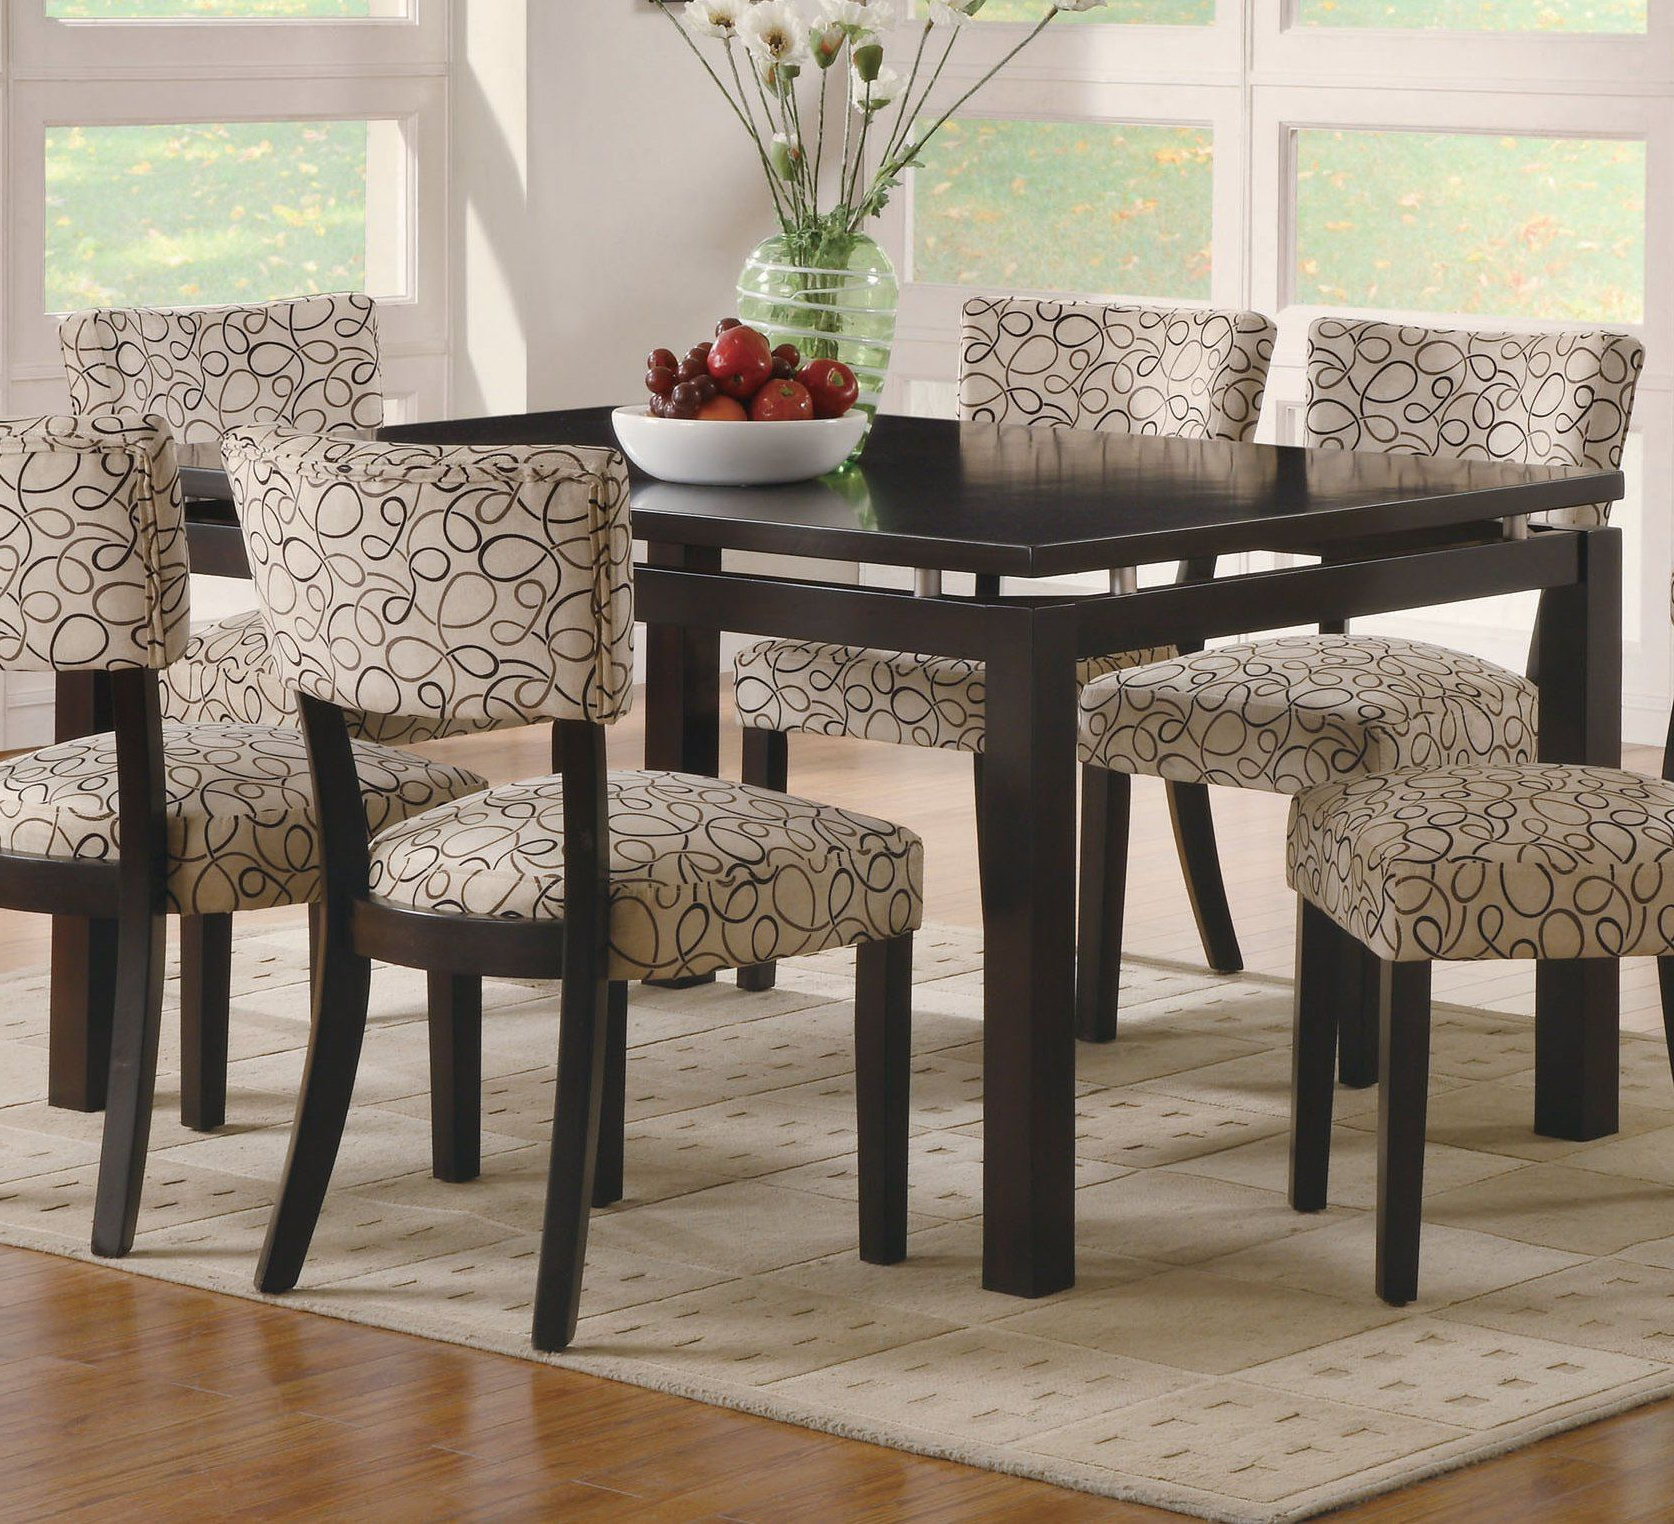 Trendy Coaster Cappuccino Rectangular Dining Table With Floating Pertaining To Transitional Rectangular Dining Tables (View 27 of 30)